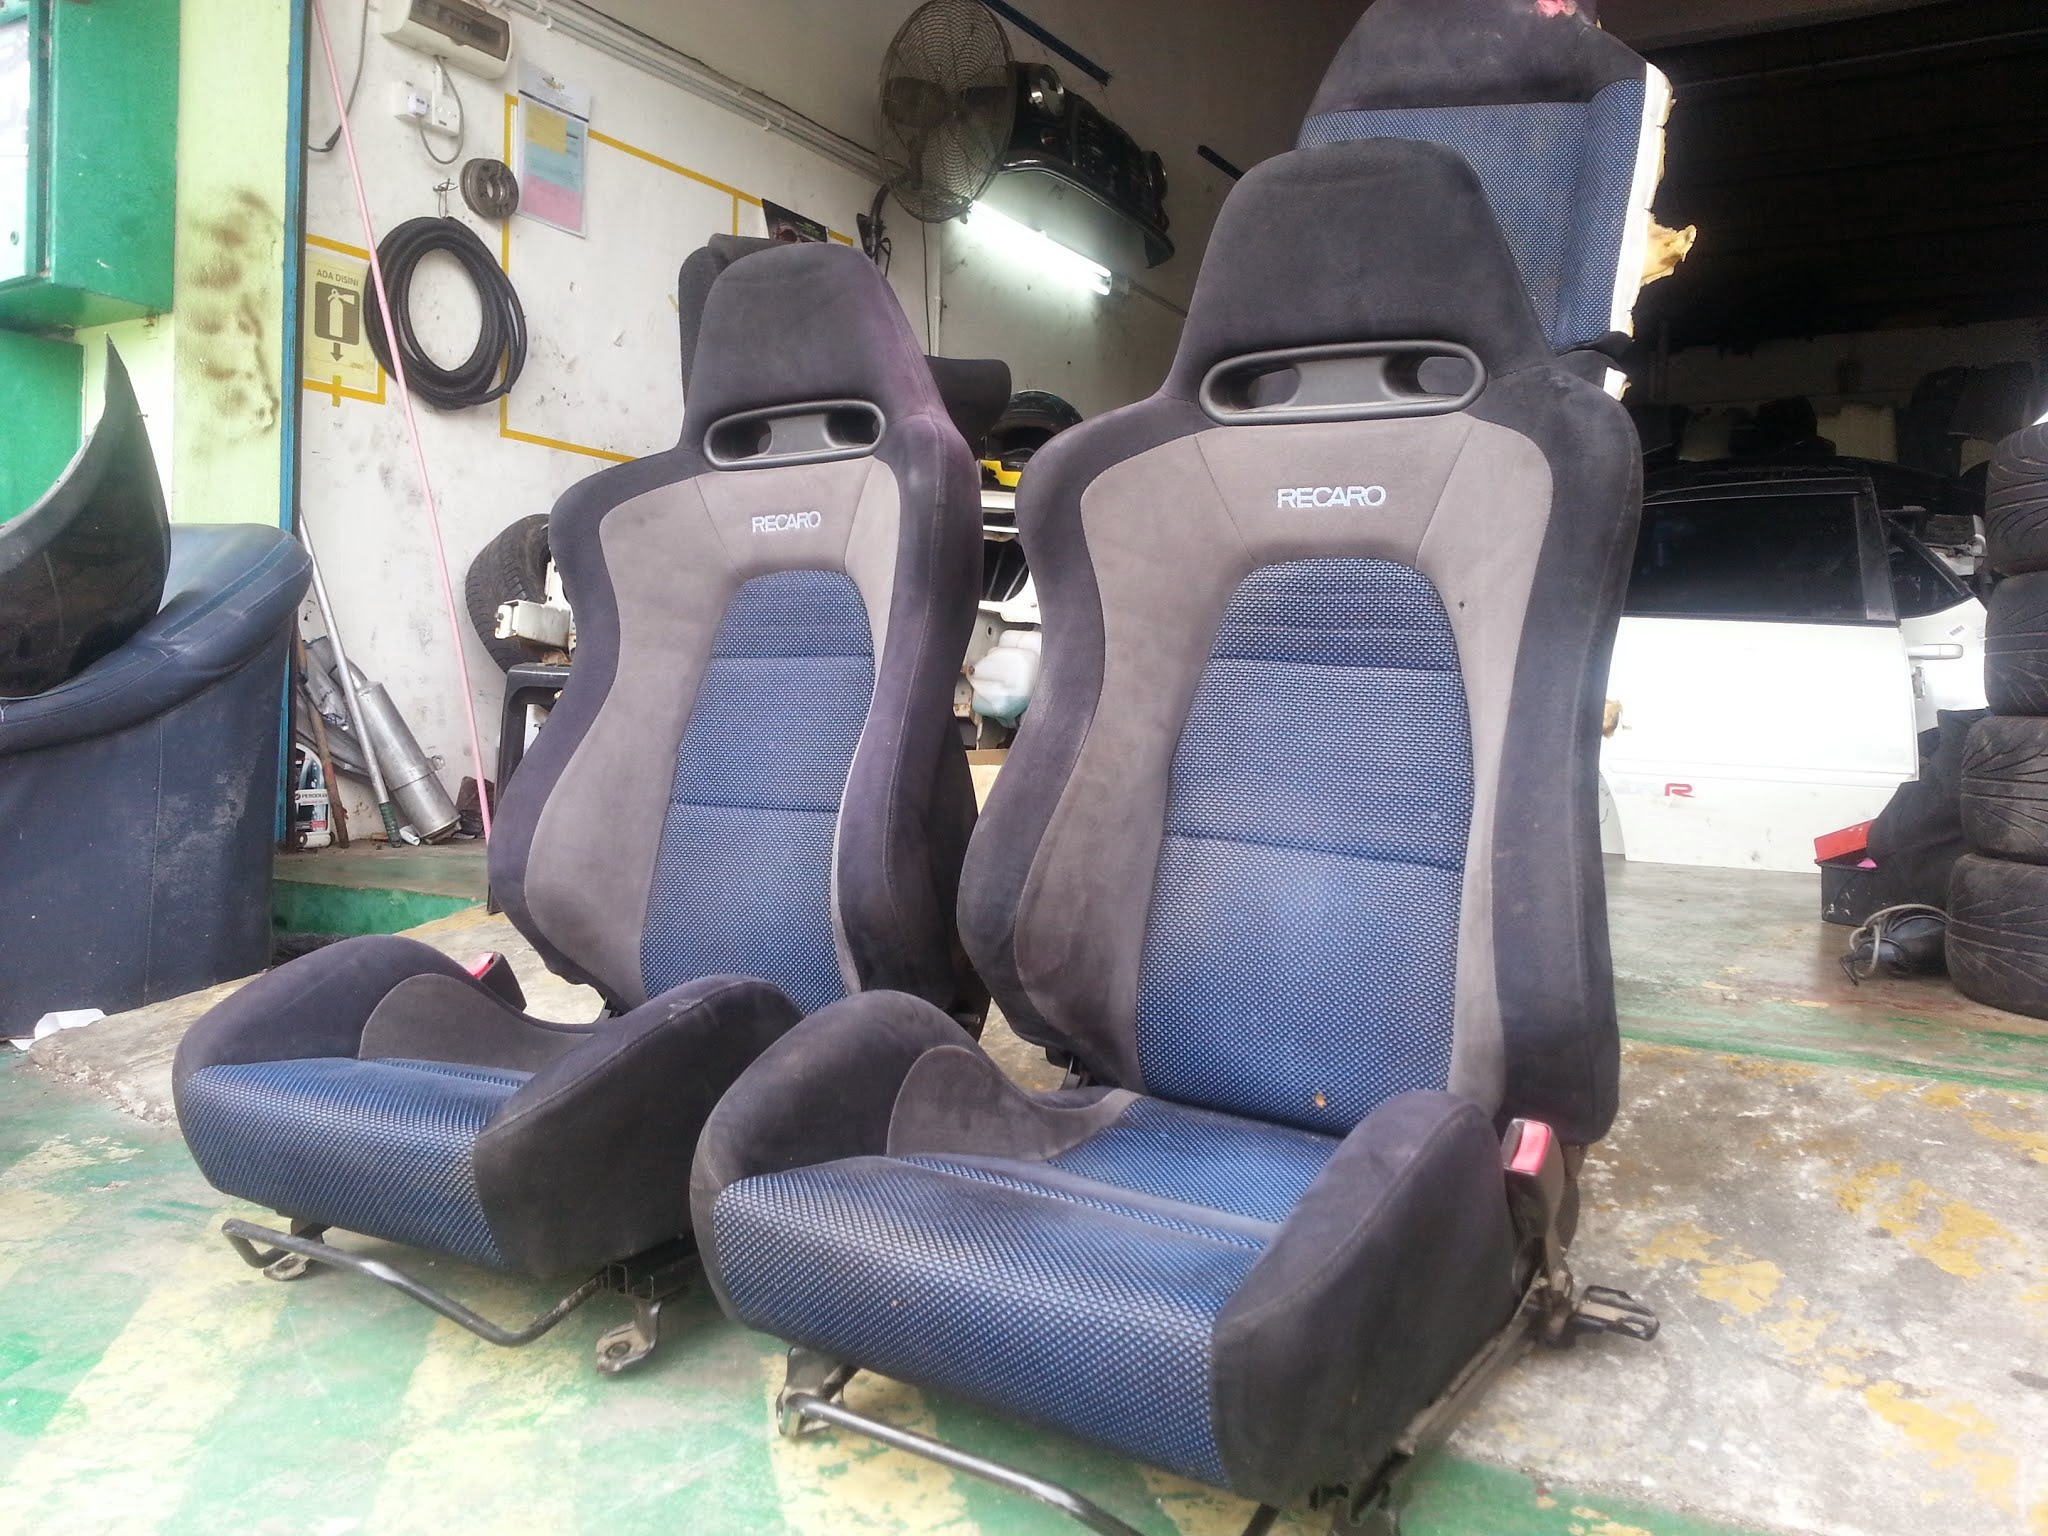 Dingz garage seat recaro lancer evo 7 complete for Garage seat 78